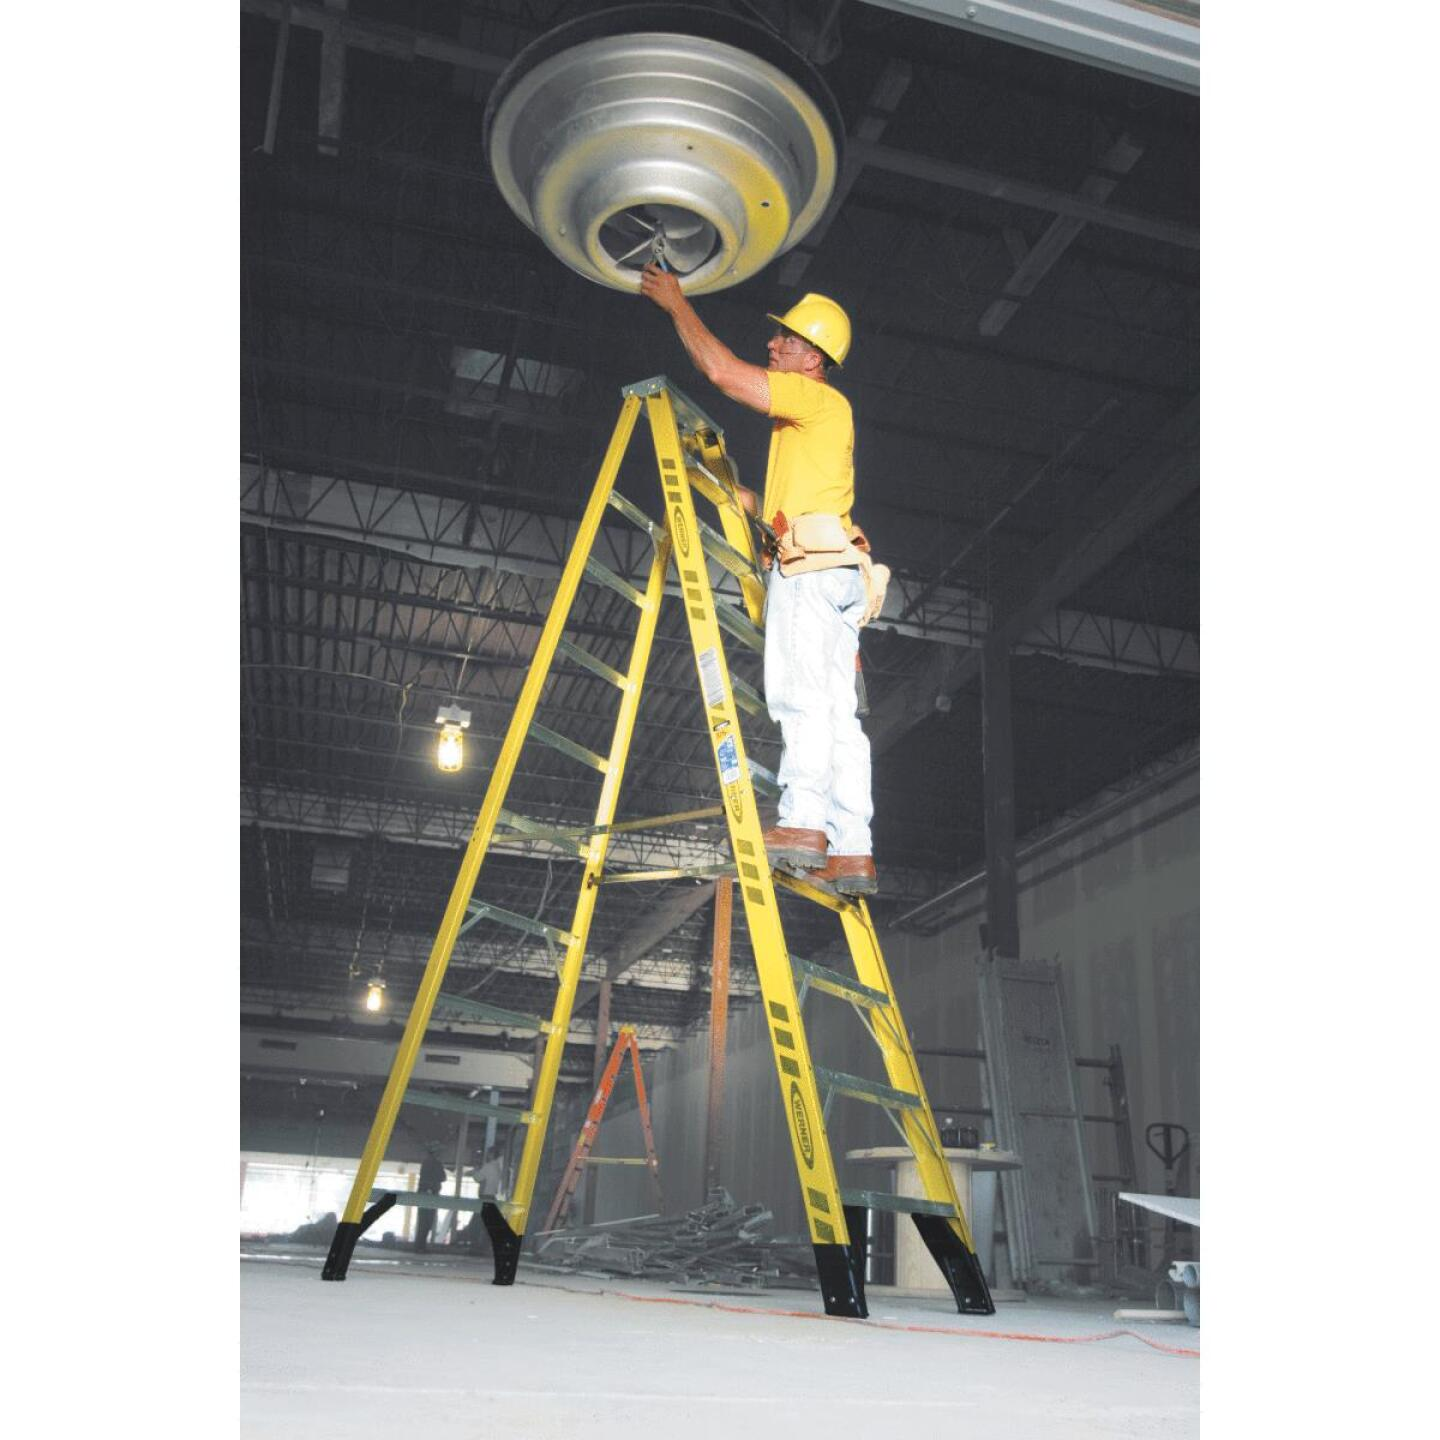 Werner 10 Ft. Fiberglass Step Ladder with 375 Lb. Load Capacity Type IAA Ladder Rating Image 2